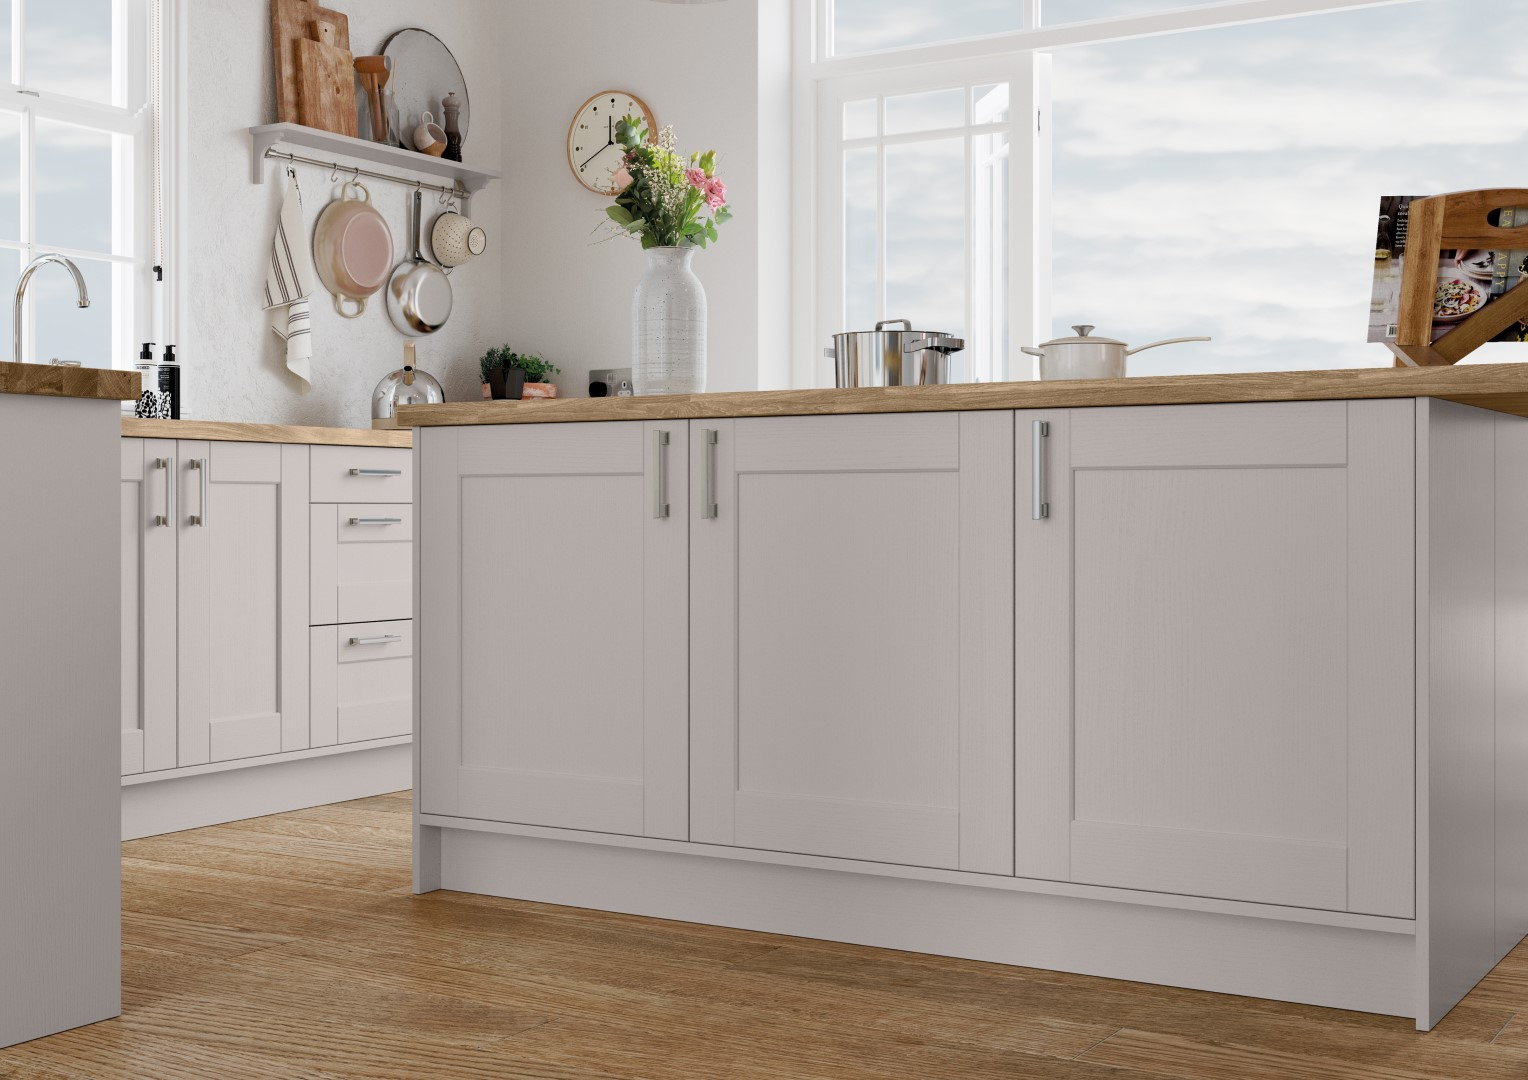 Kensington Cashmere - Kitchen Design - Alan Kelly Kitchens - Waterford - 1